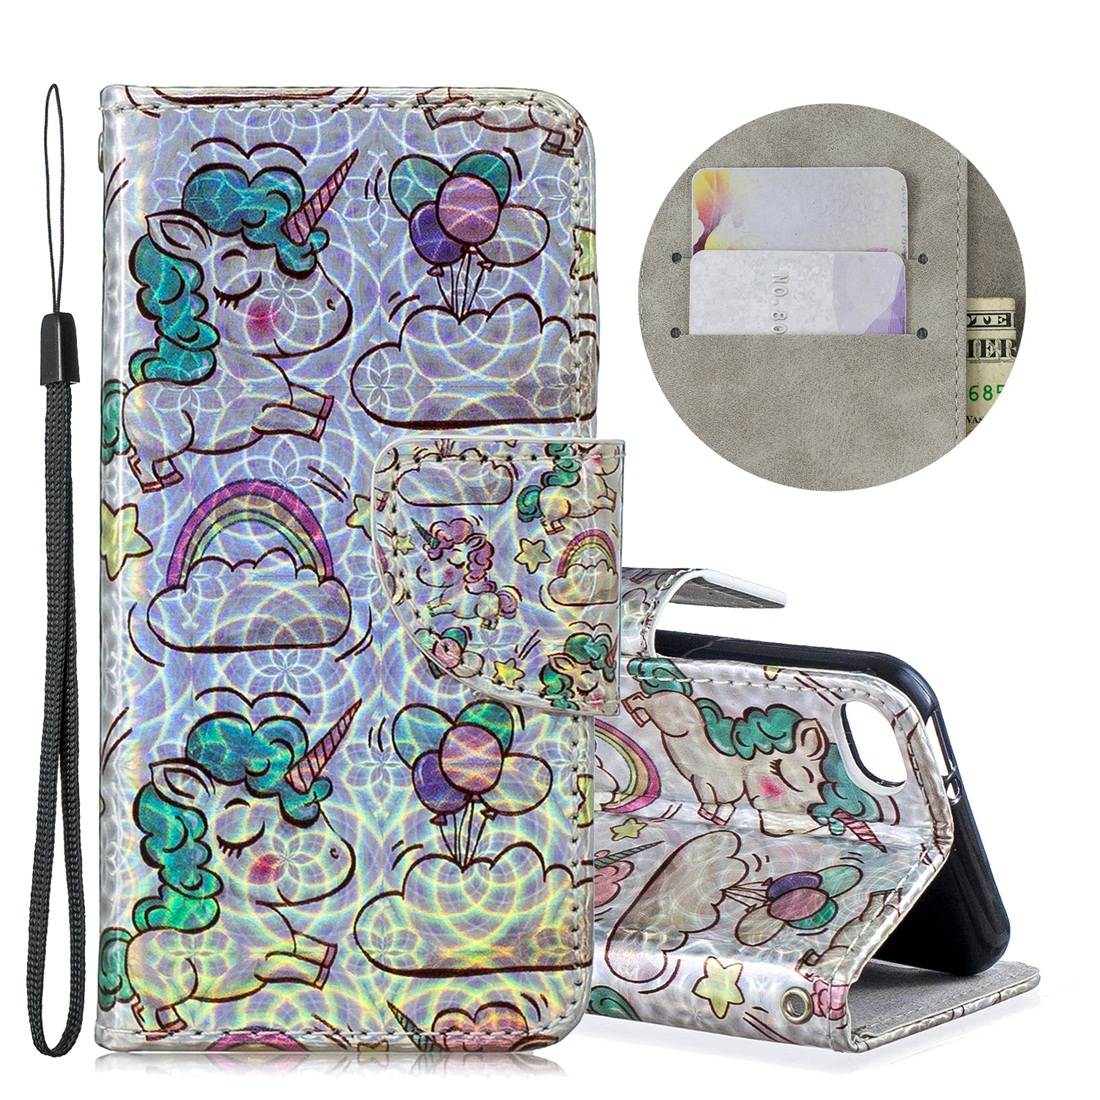 Dazzle Colorful Leather Case w/ Slim Profile & Lanyard For iPod Touch 5/6 (Rainbow Unicorn)